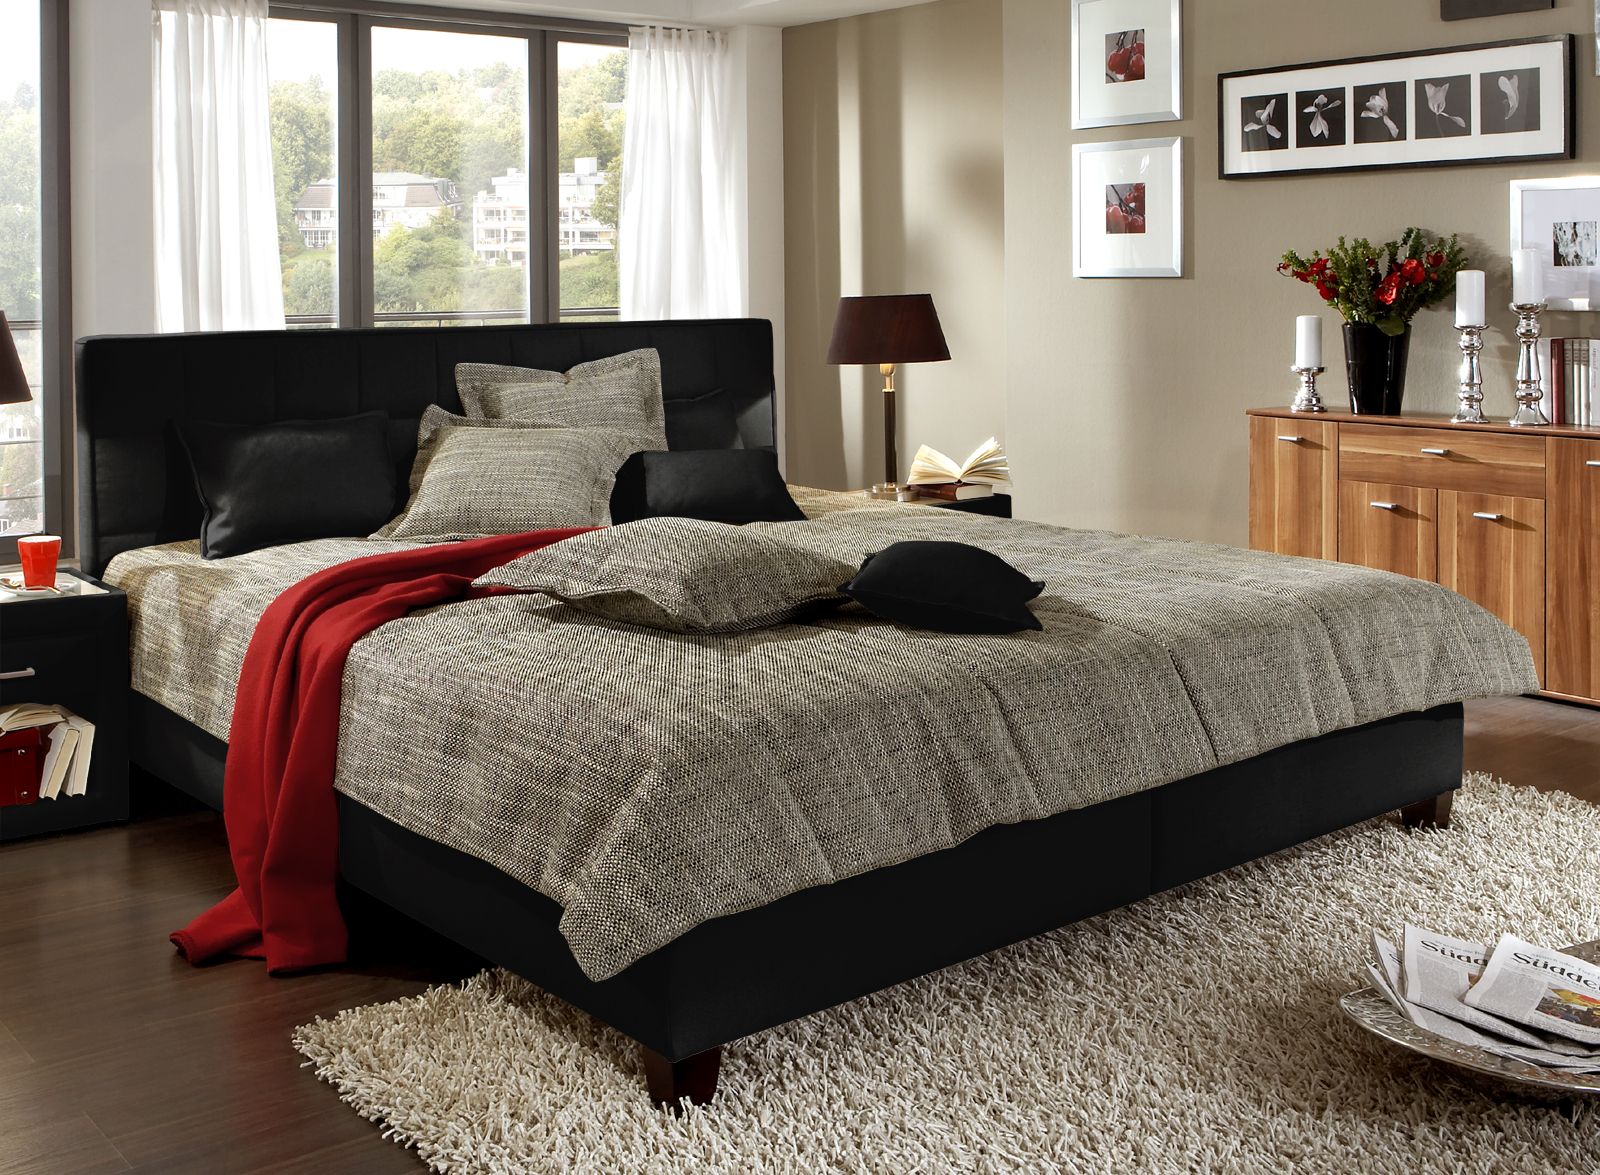 tagesdecke doppelbett my blog. Black Bedroom Furniture Sets. Home Design Ideas